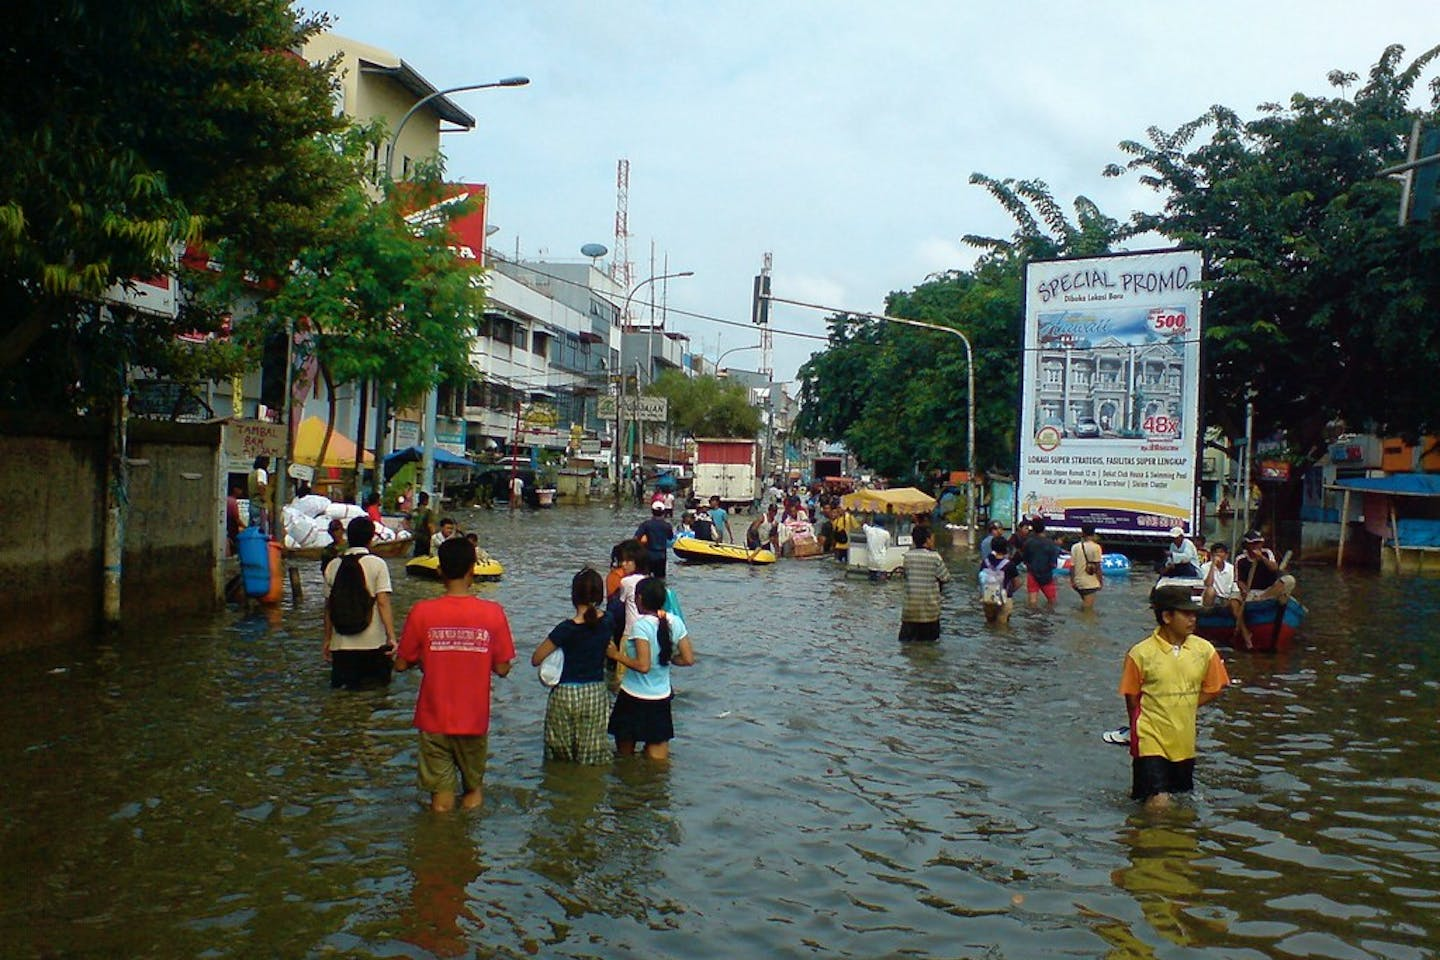 A flooded market in jakarta, Indonesia